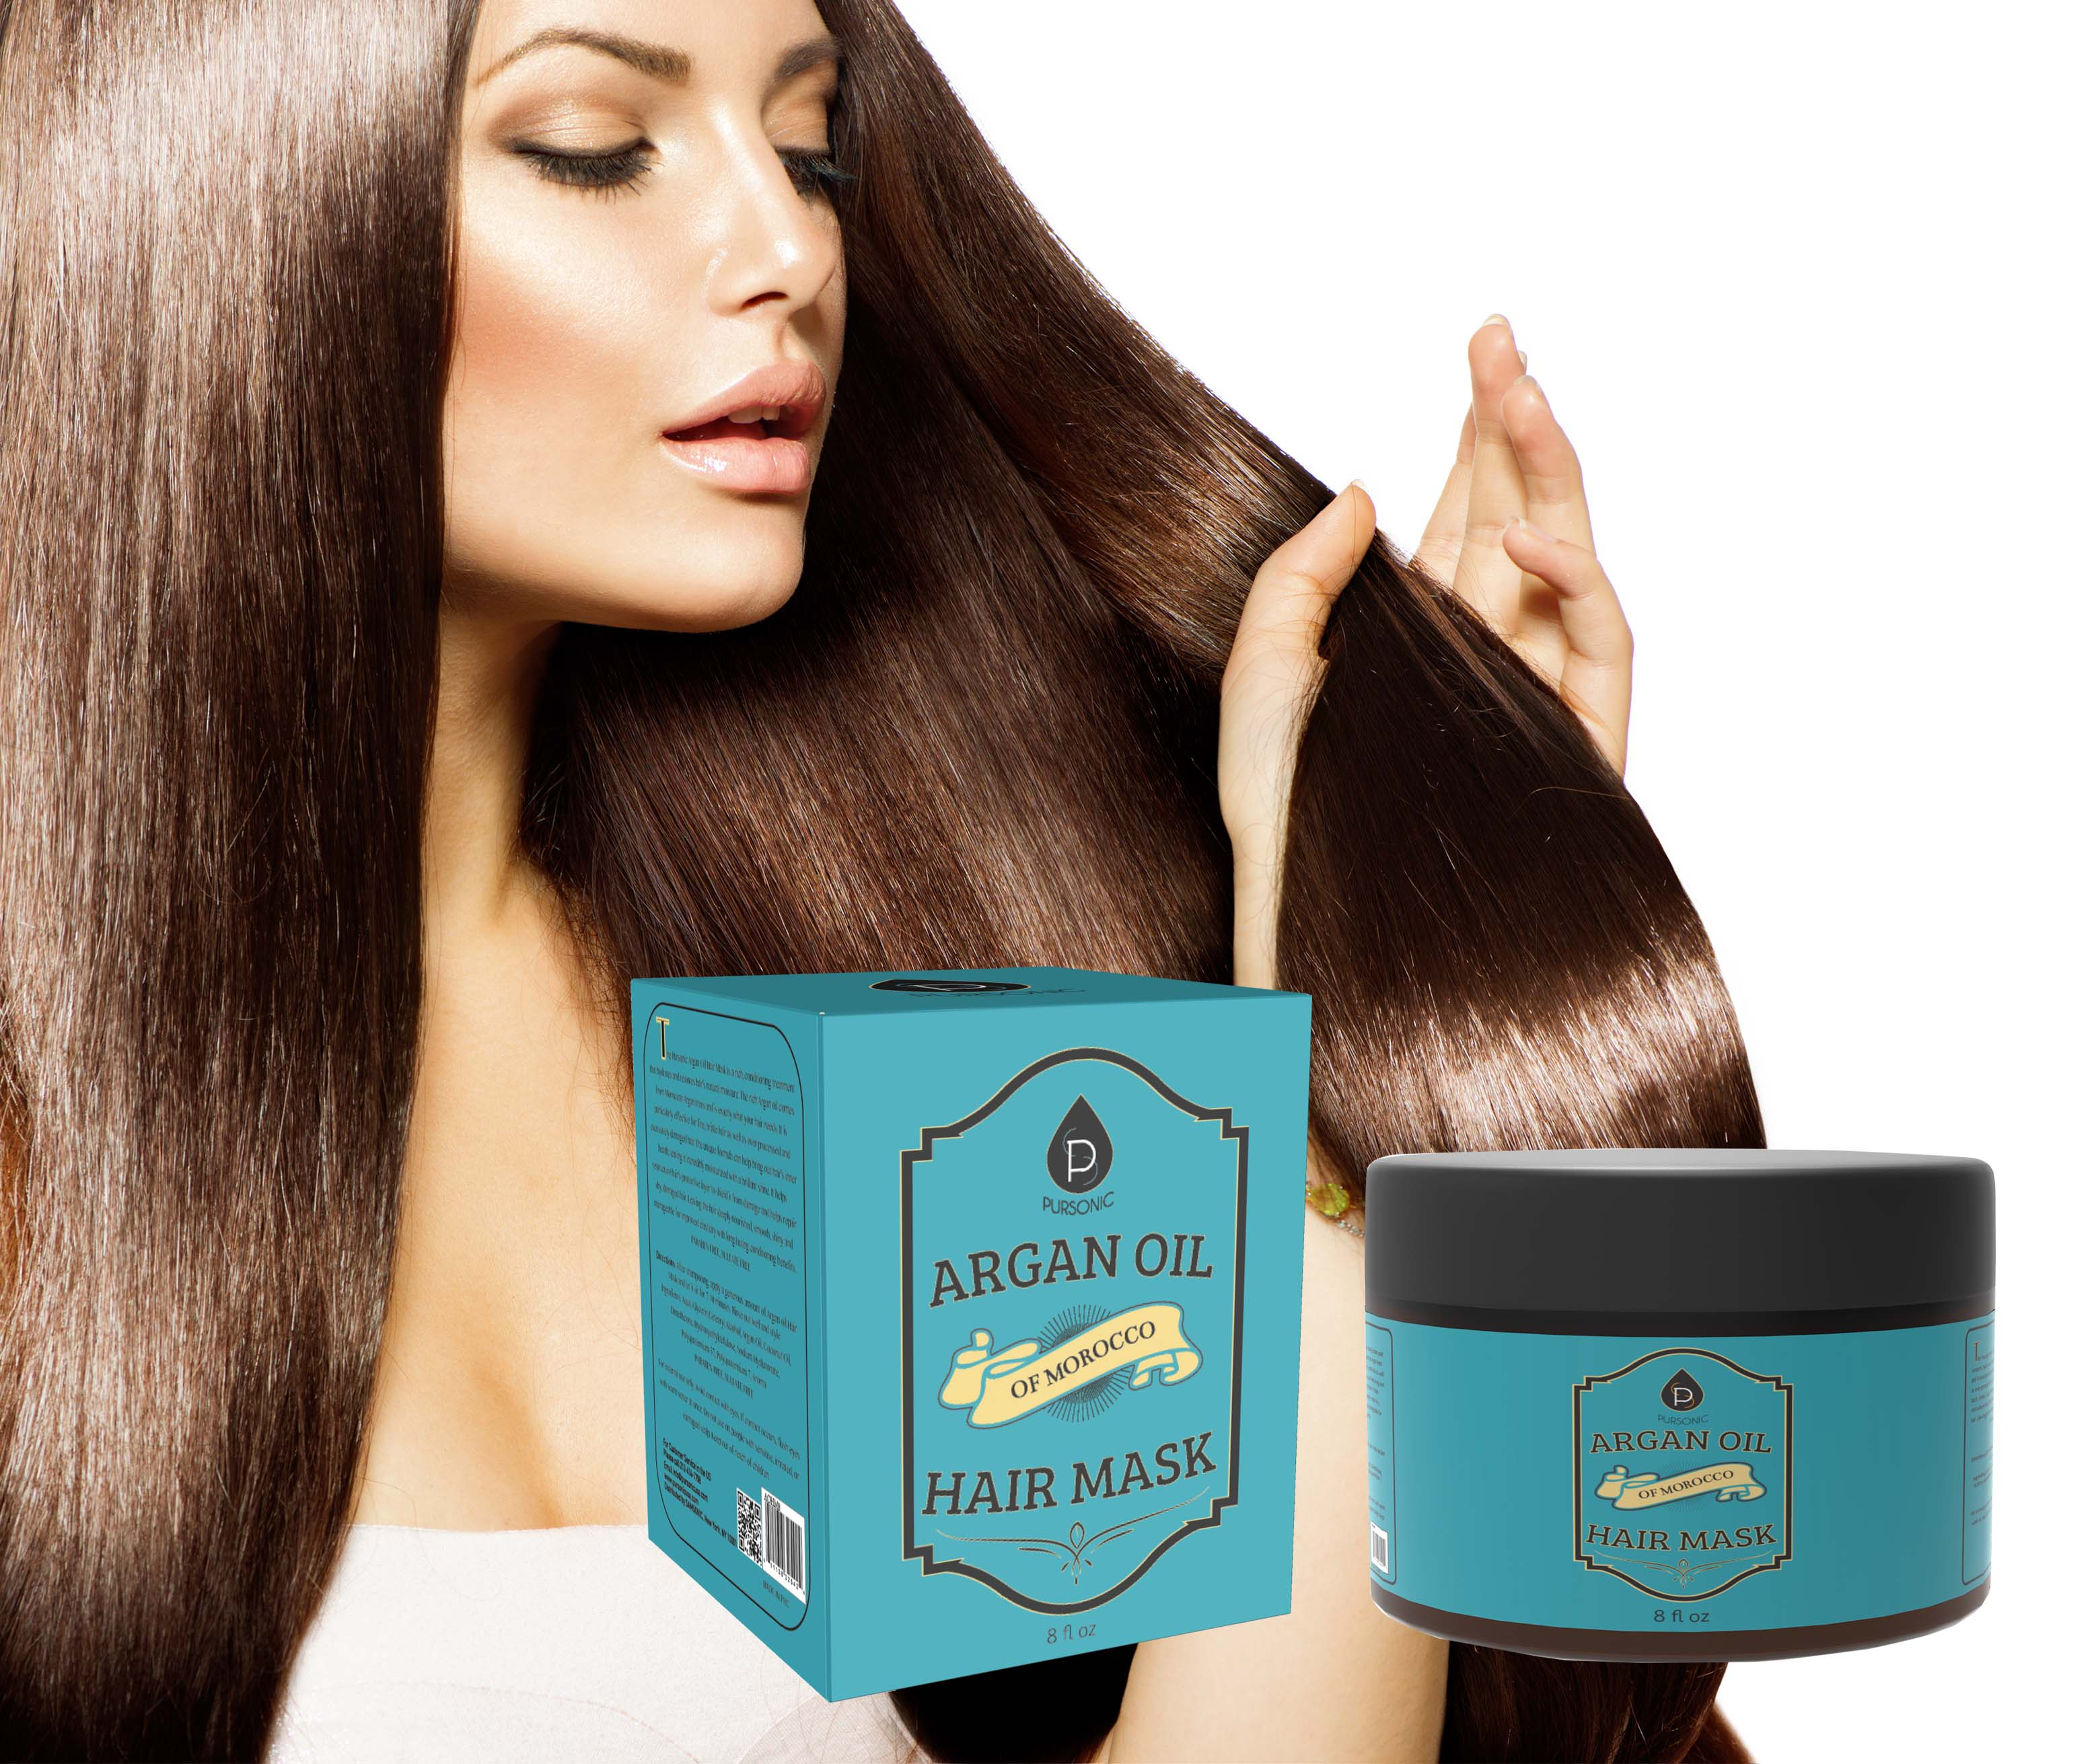 PURSONIC AOHM8 ARGAN HAIR MASK 8OZ OF MOROCCO OIL ORGANIC